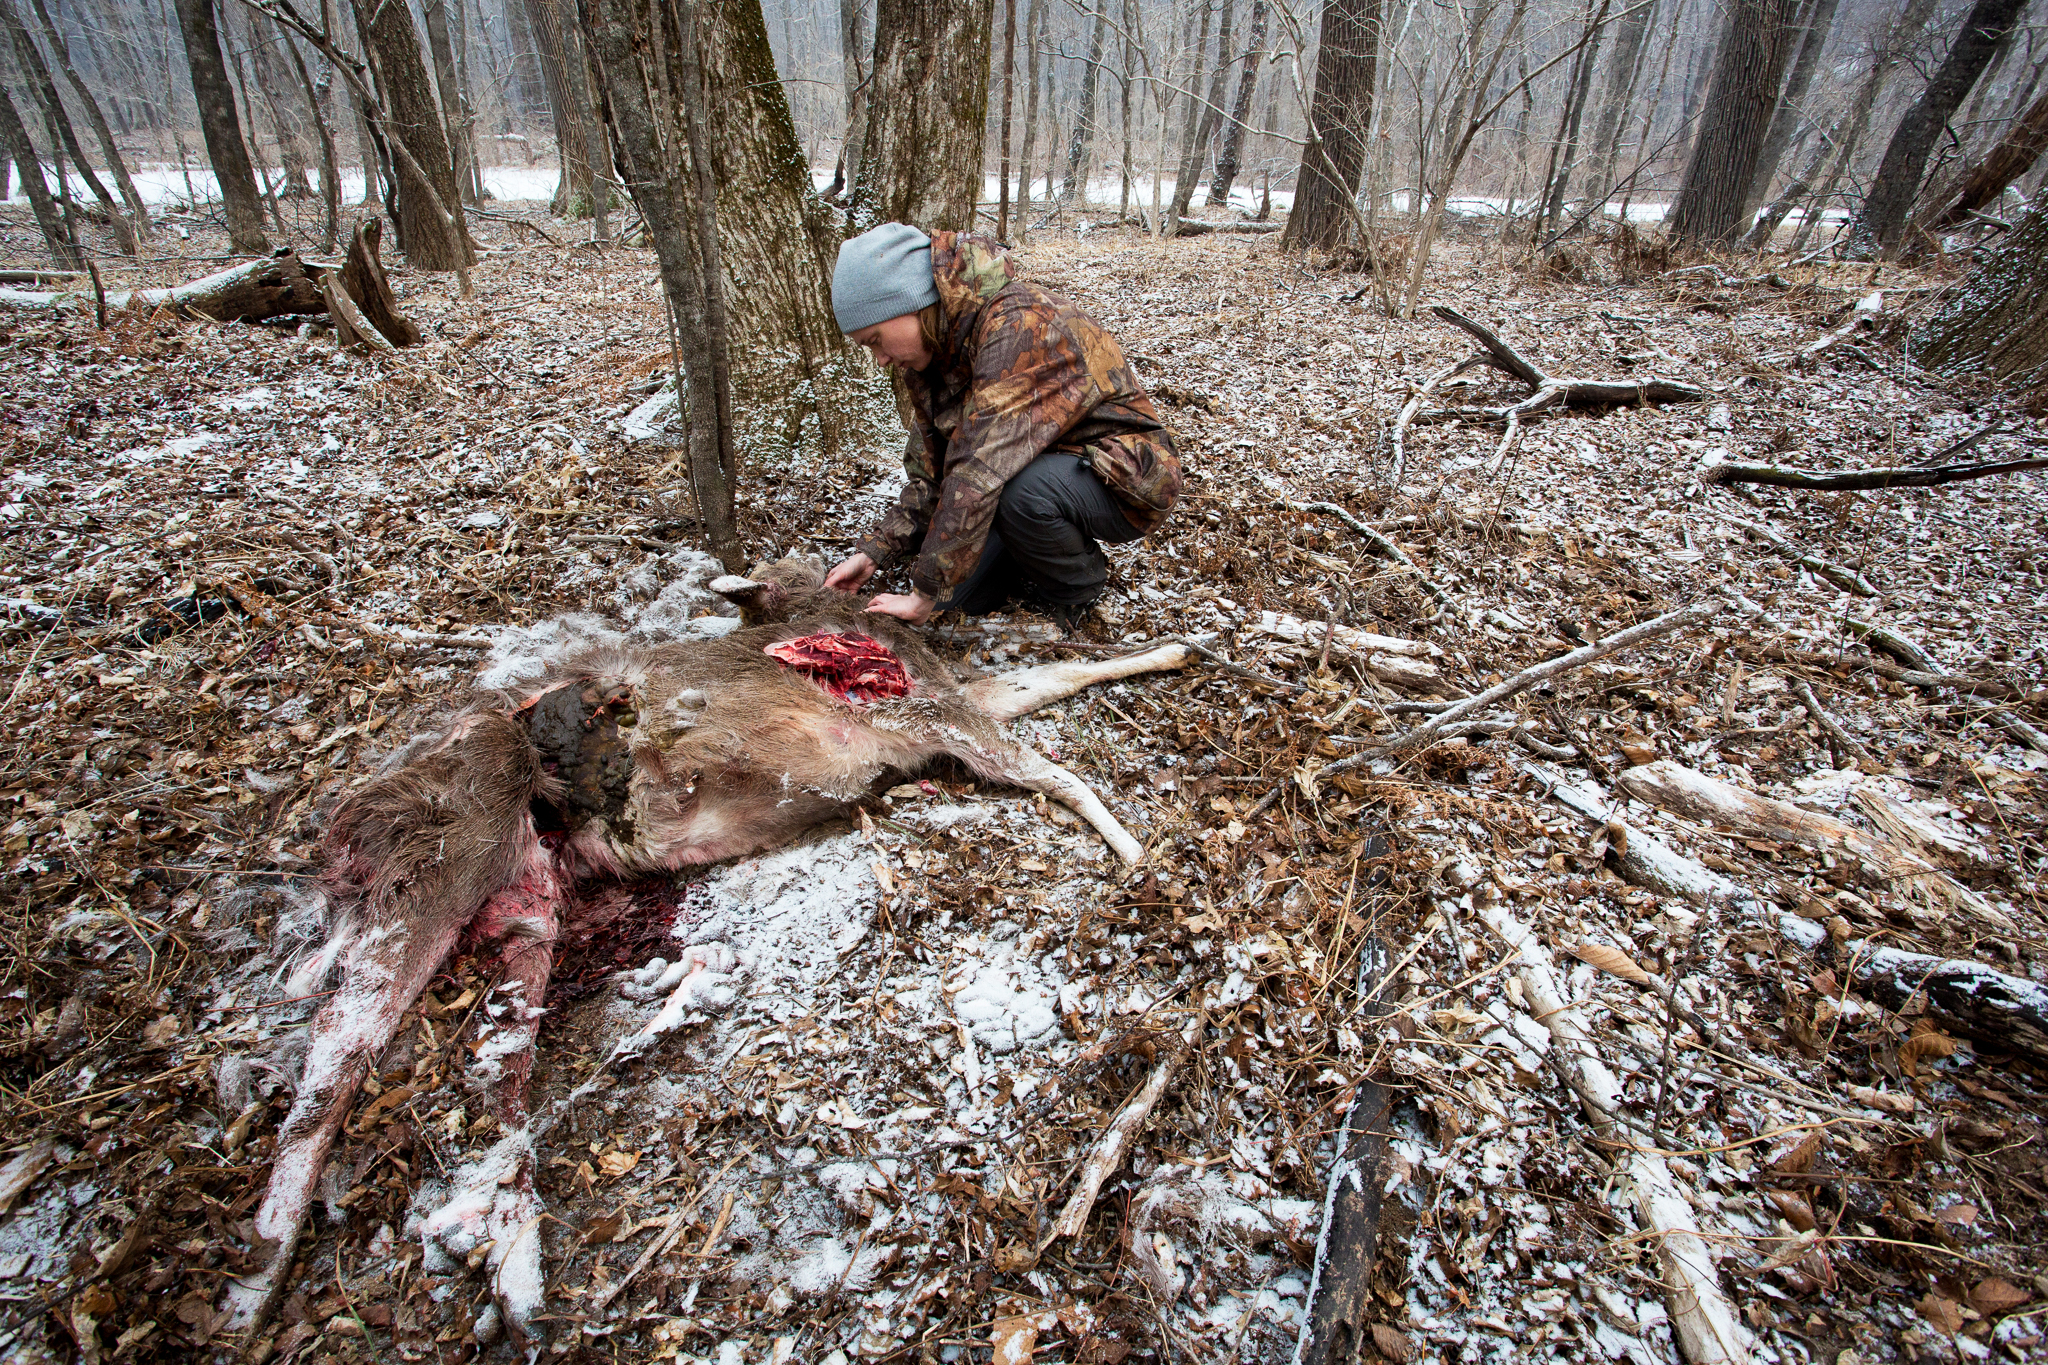 Big cat expert Dina Matyukhina inspects the carcass of a sika deer inside the national park. While Amur leopards frequently prey on both sika and roe deer, dogs belonging to farmers just outside the park borders were the culprits in this case.